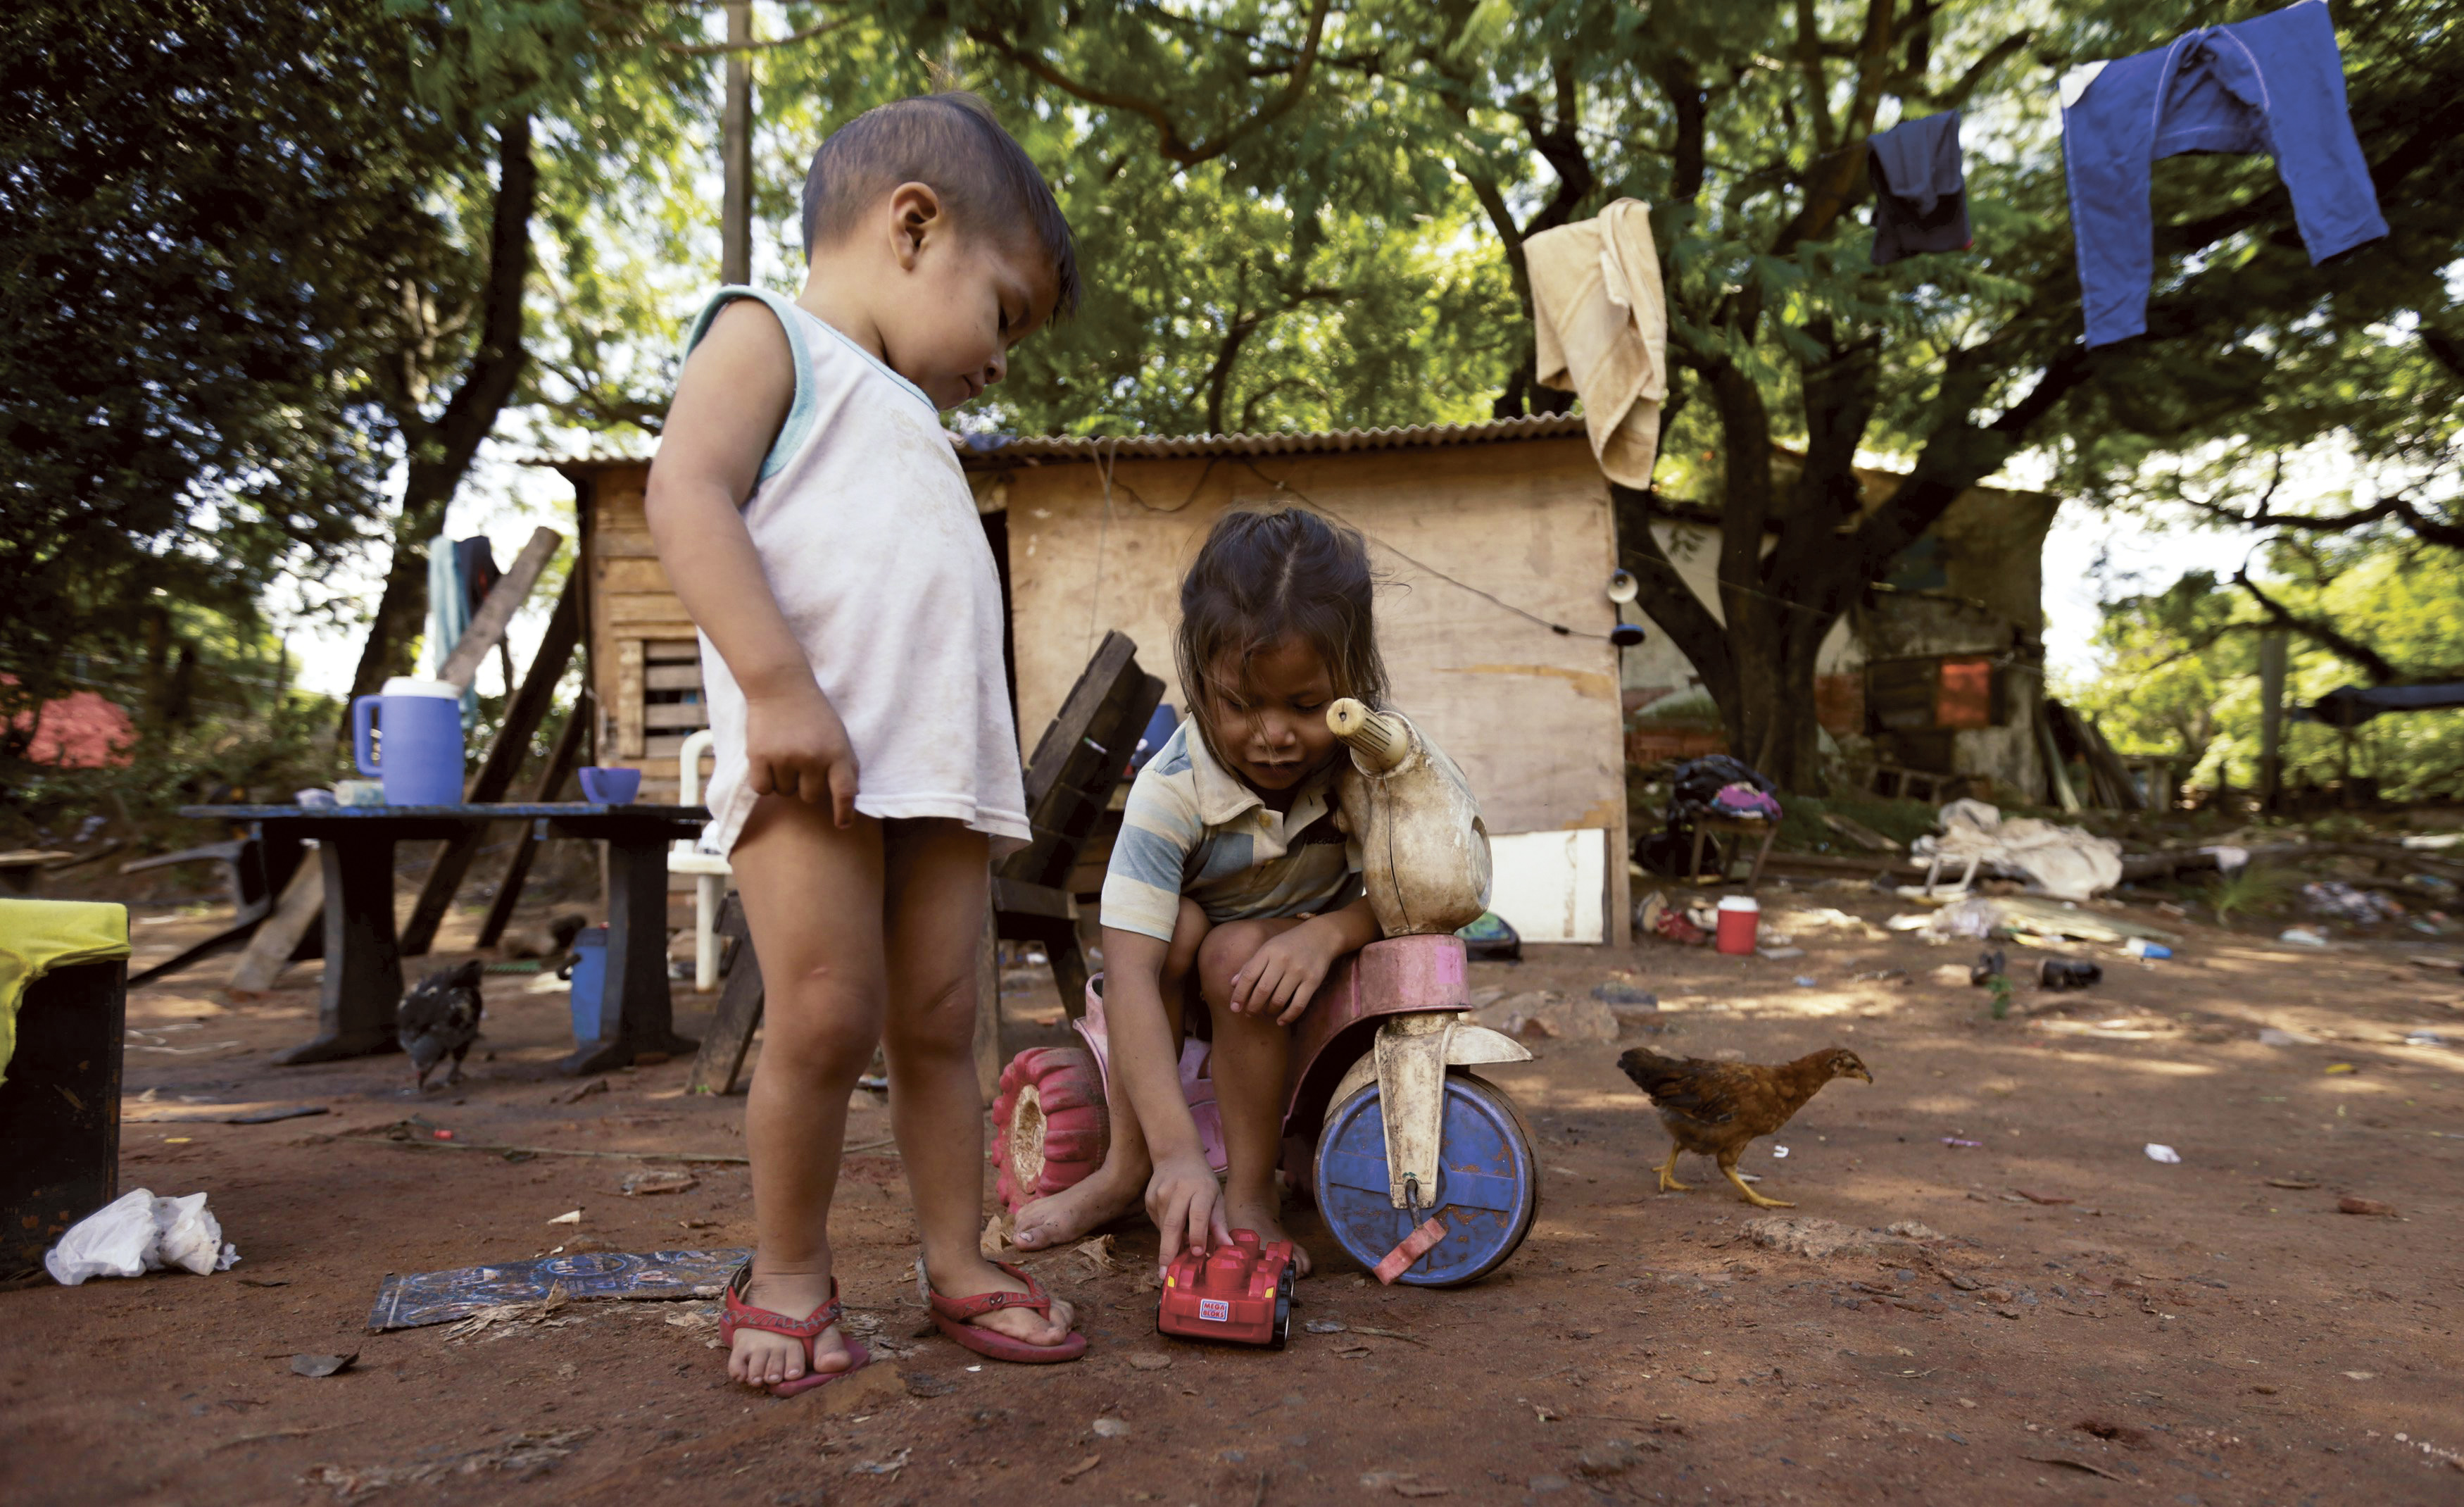 the effect of poverty on childrens lives Unhealthy children: children living below the poverty threshold are unhealthier than nonpoor children due to less nutritious food supplies and access to good healthcare service effect of poverty on child development a child develops better where there are a good family structure and quality.